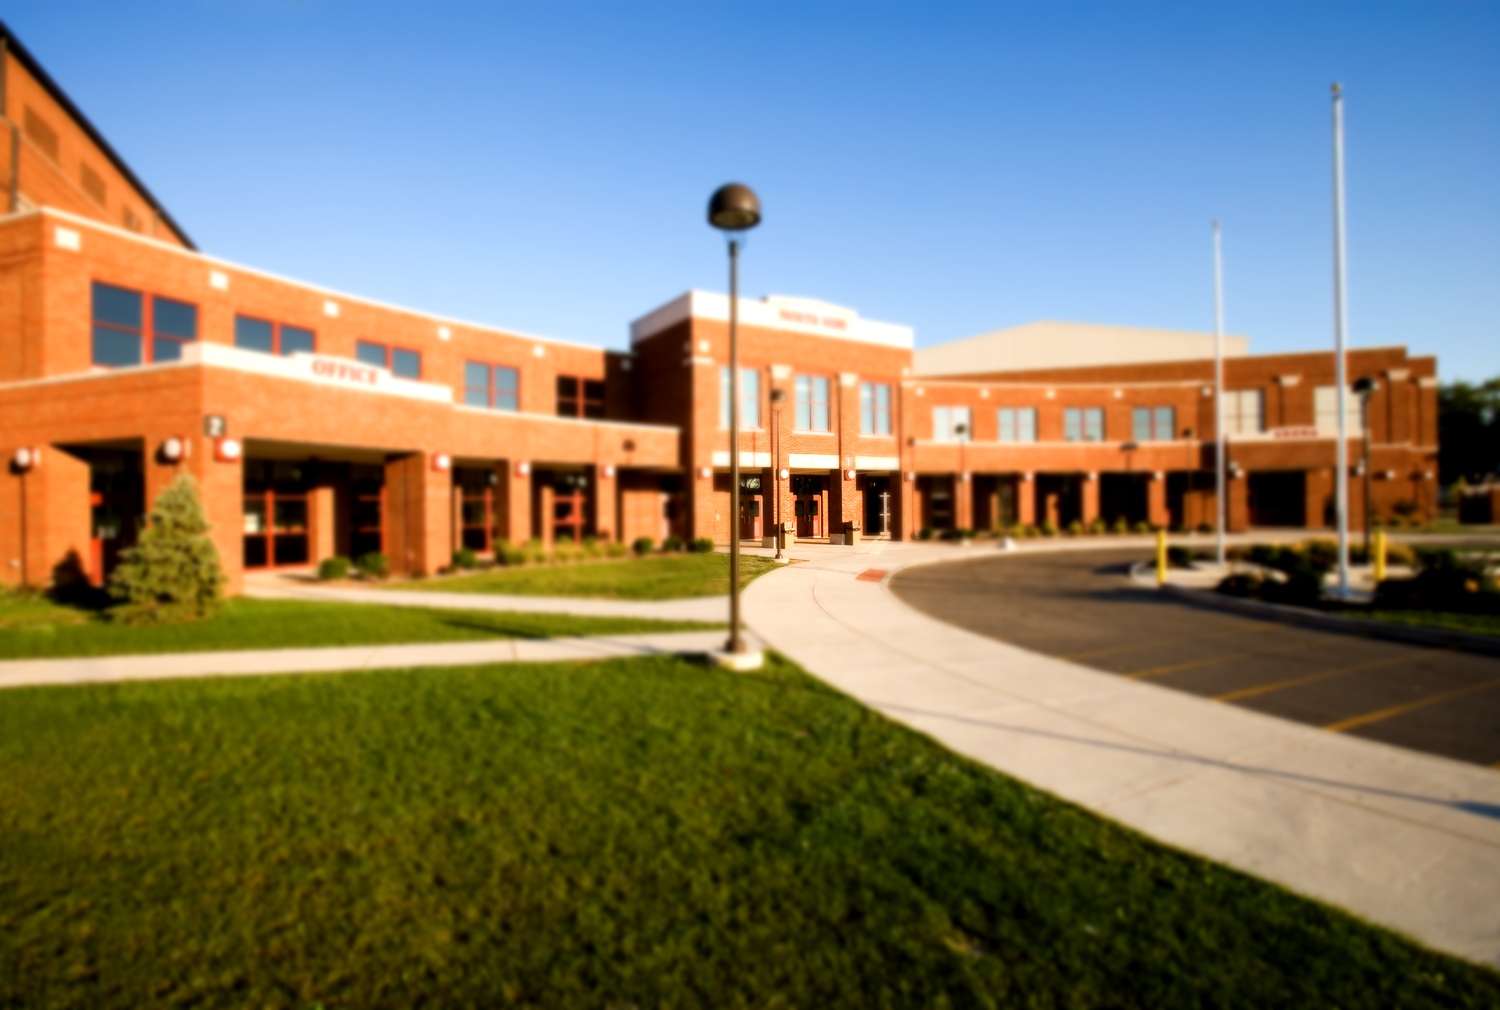 Penfield Central School District